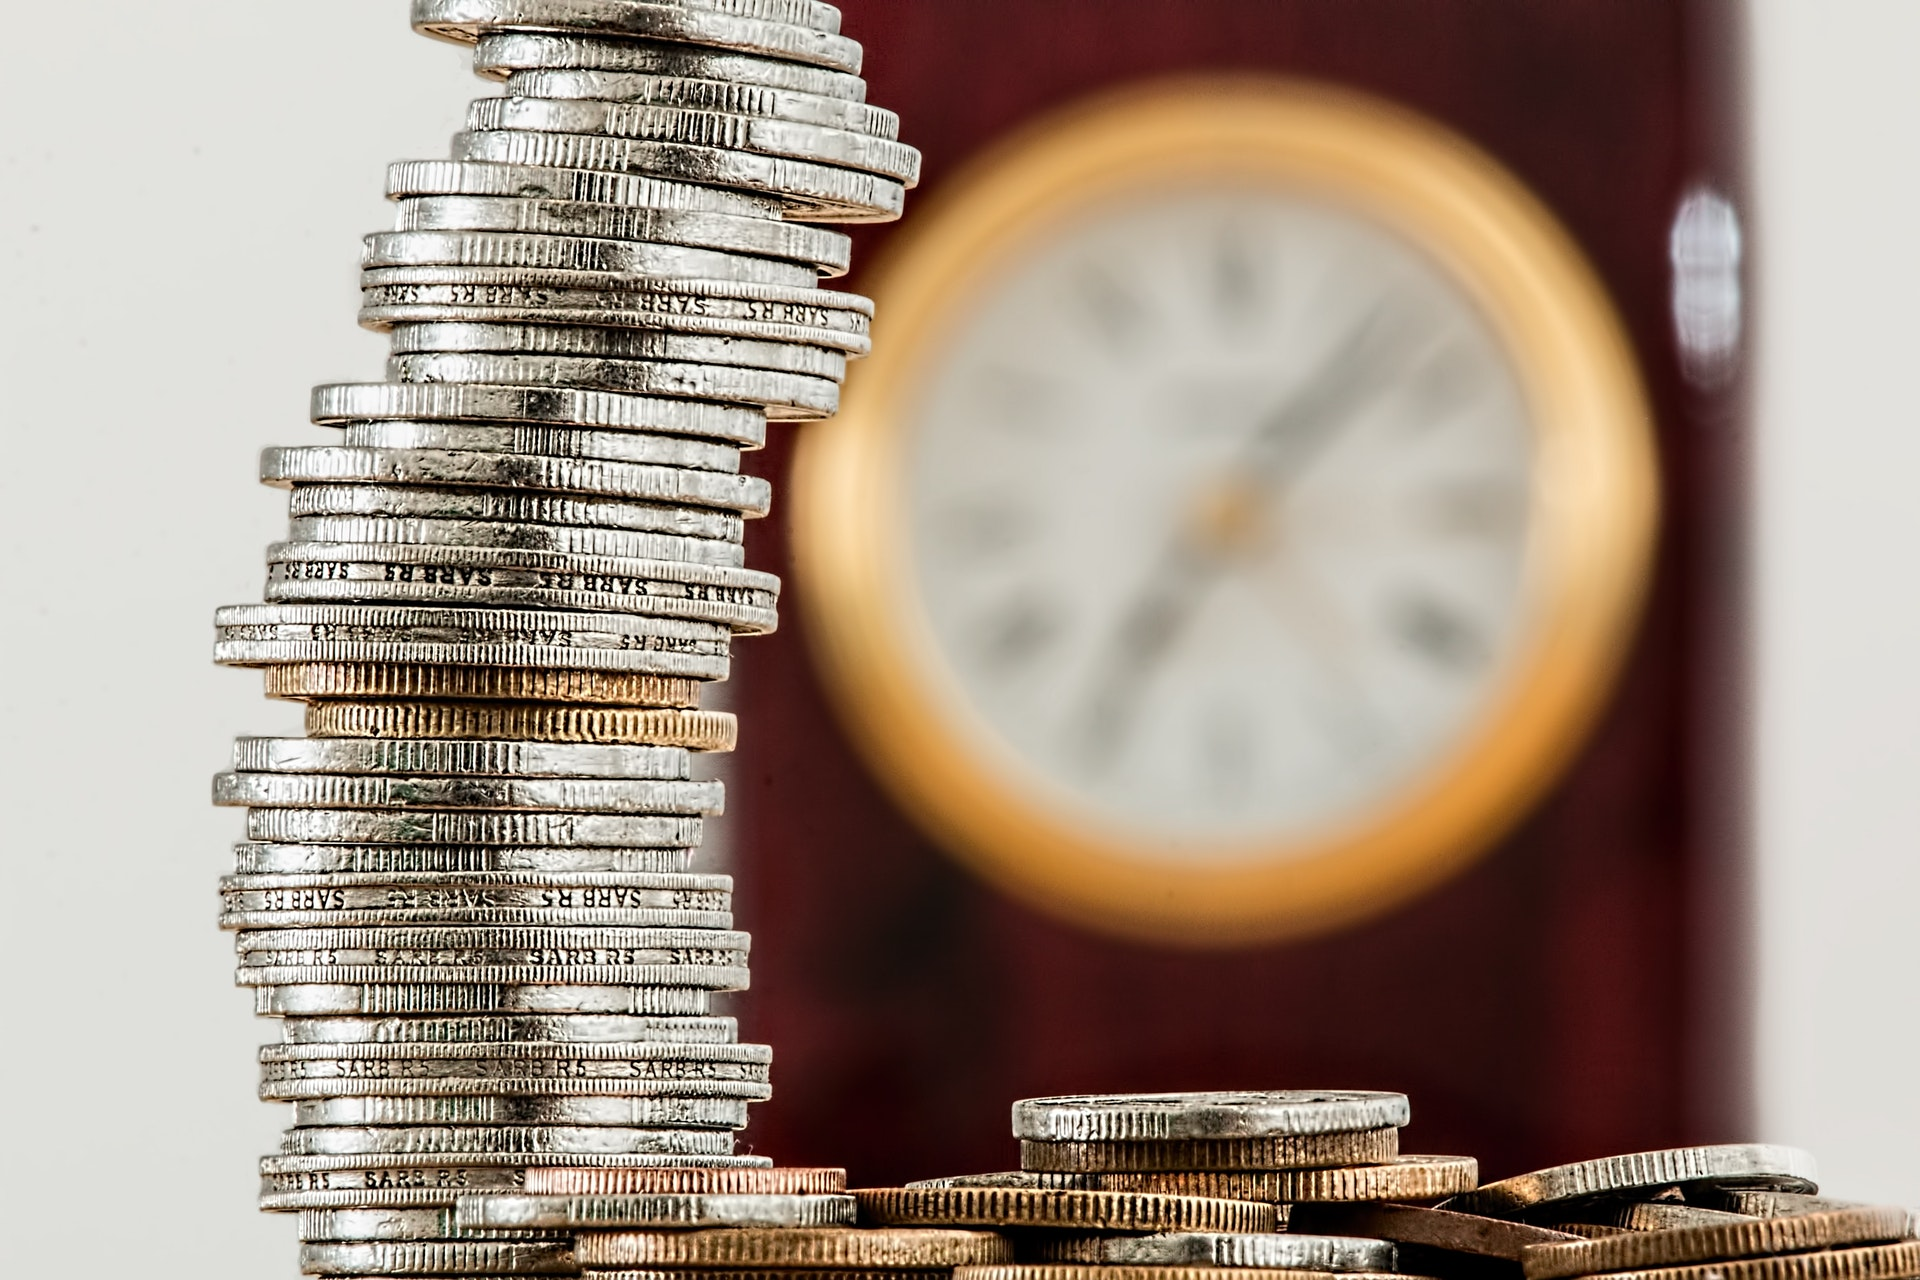 Coins stacked with clock